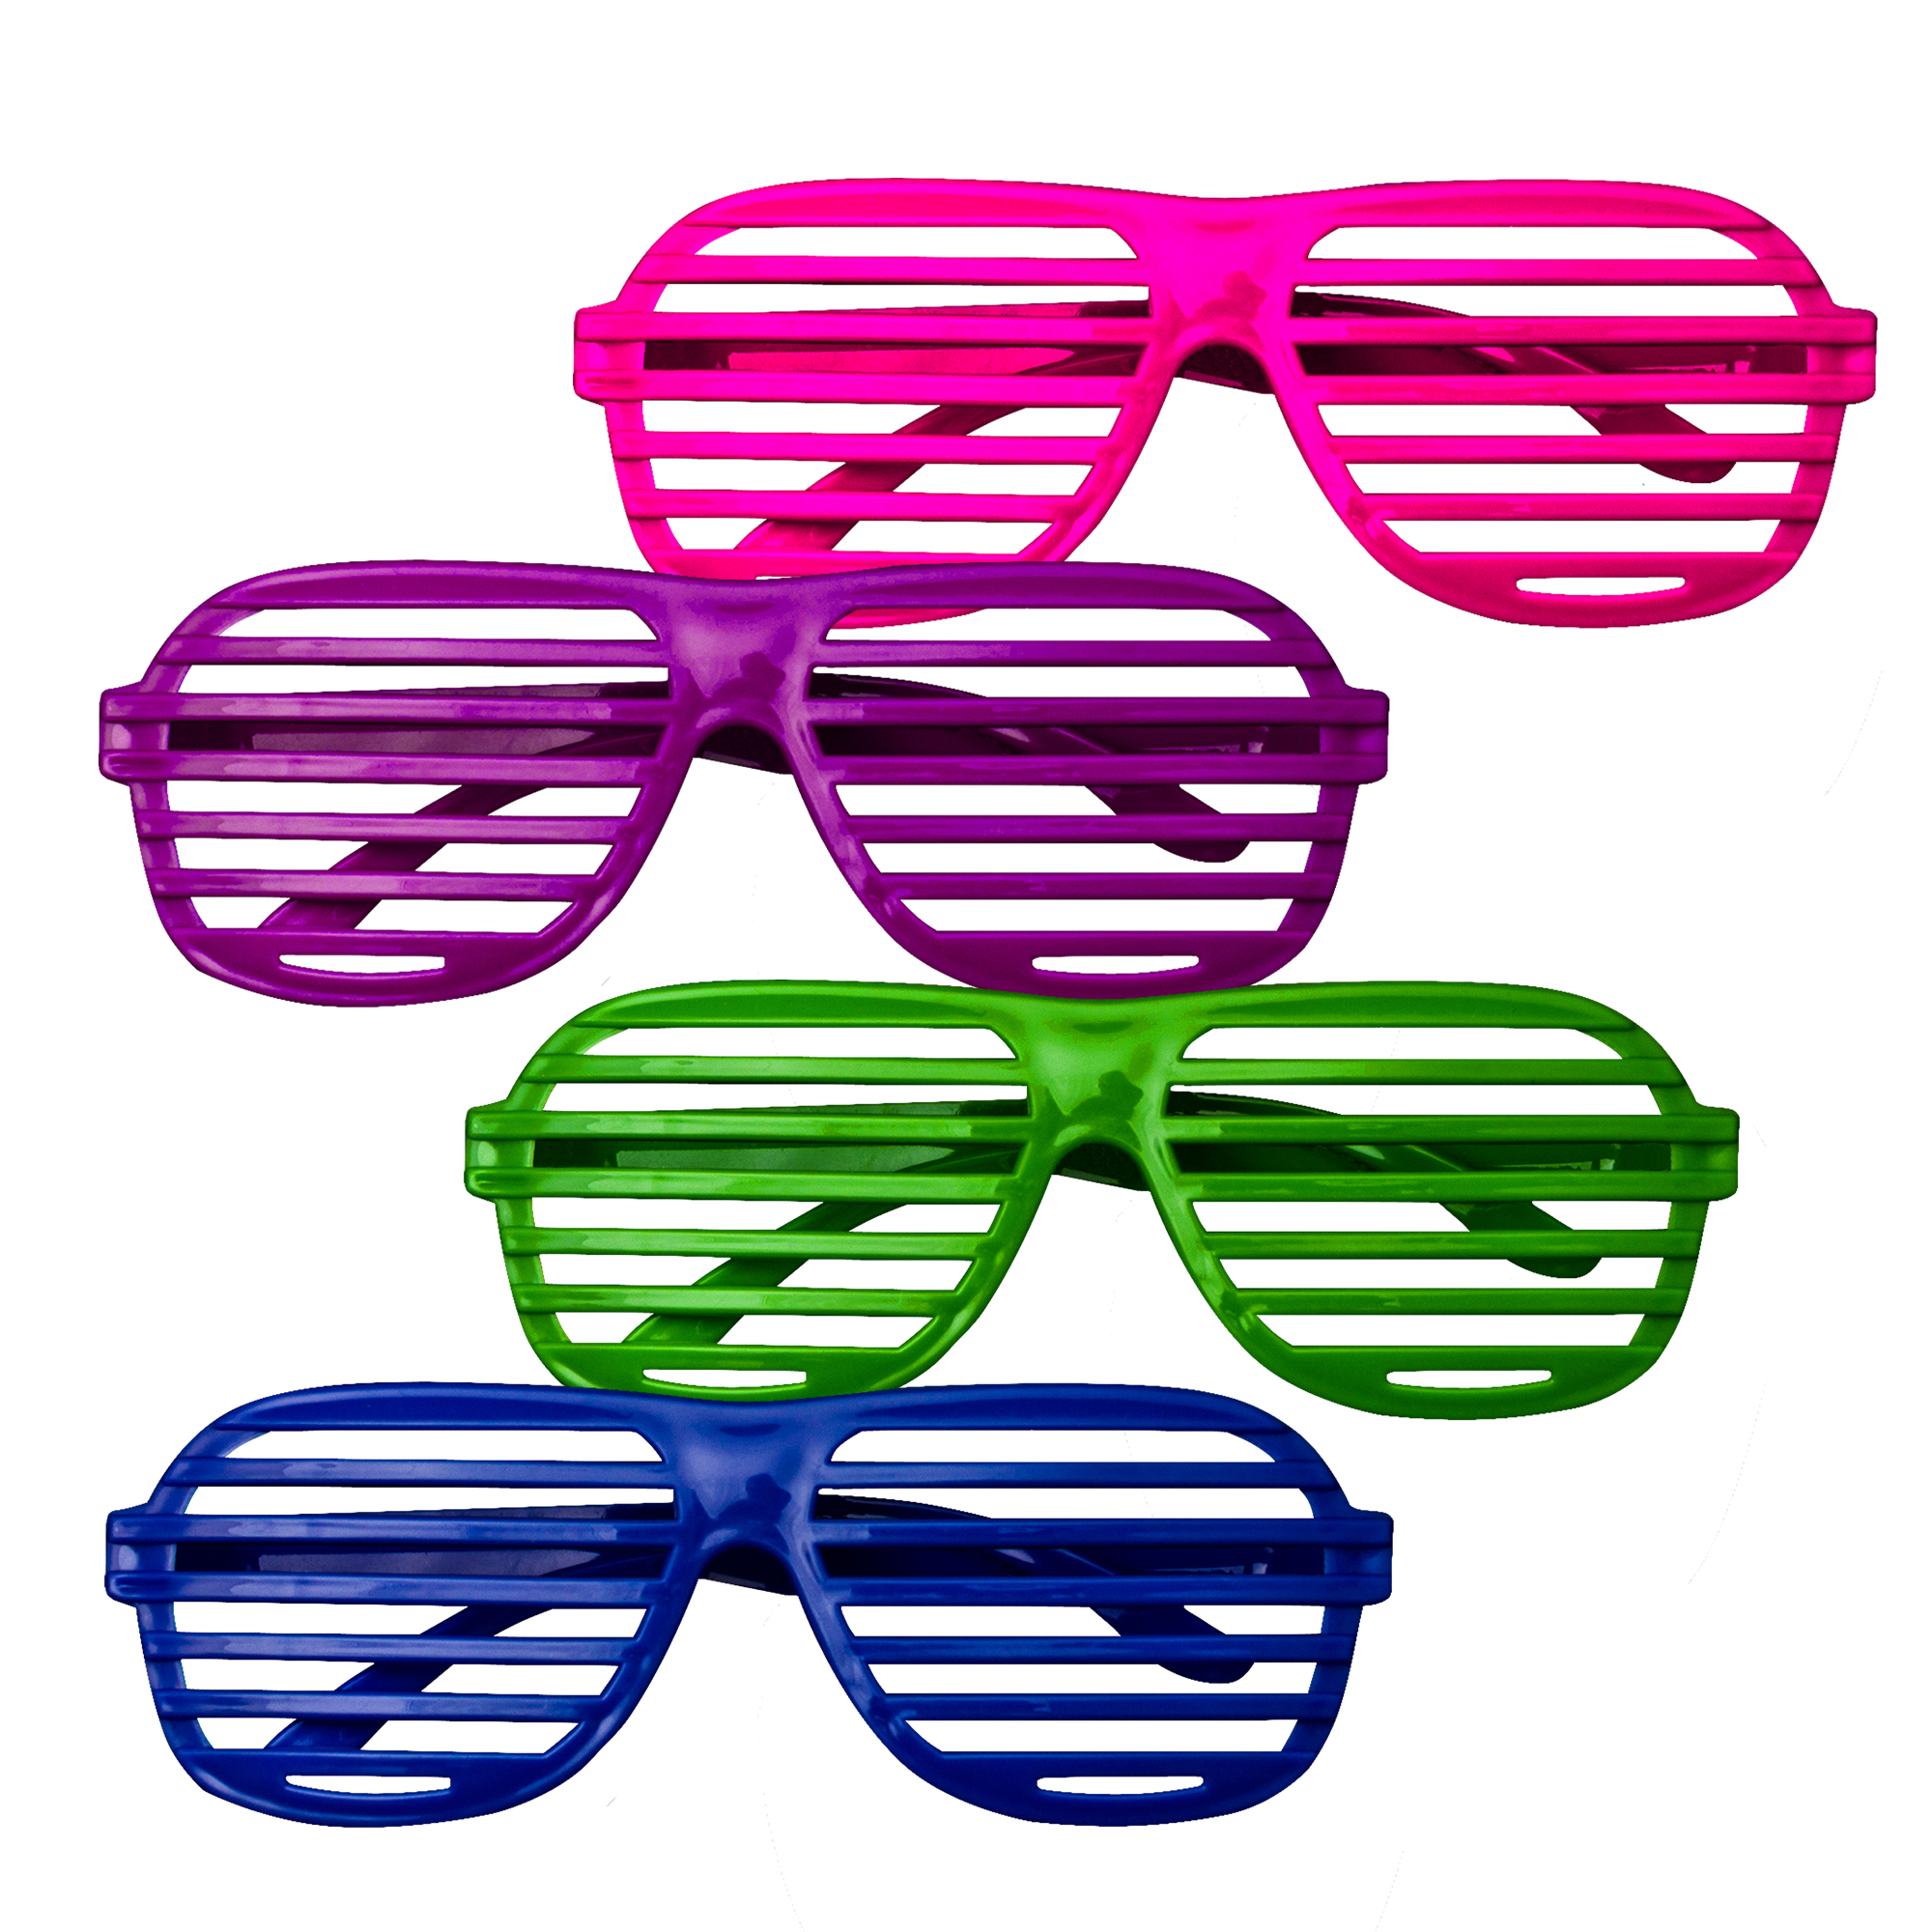 Plastic Slotted Shades - Assorted 12ct